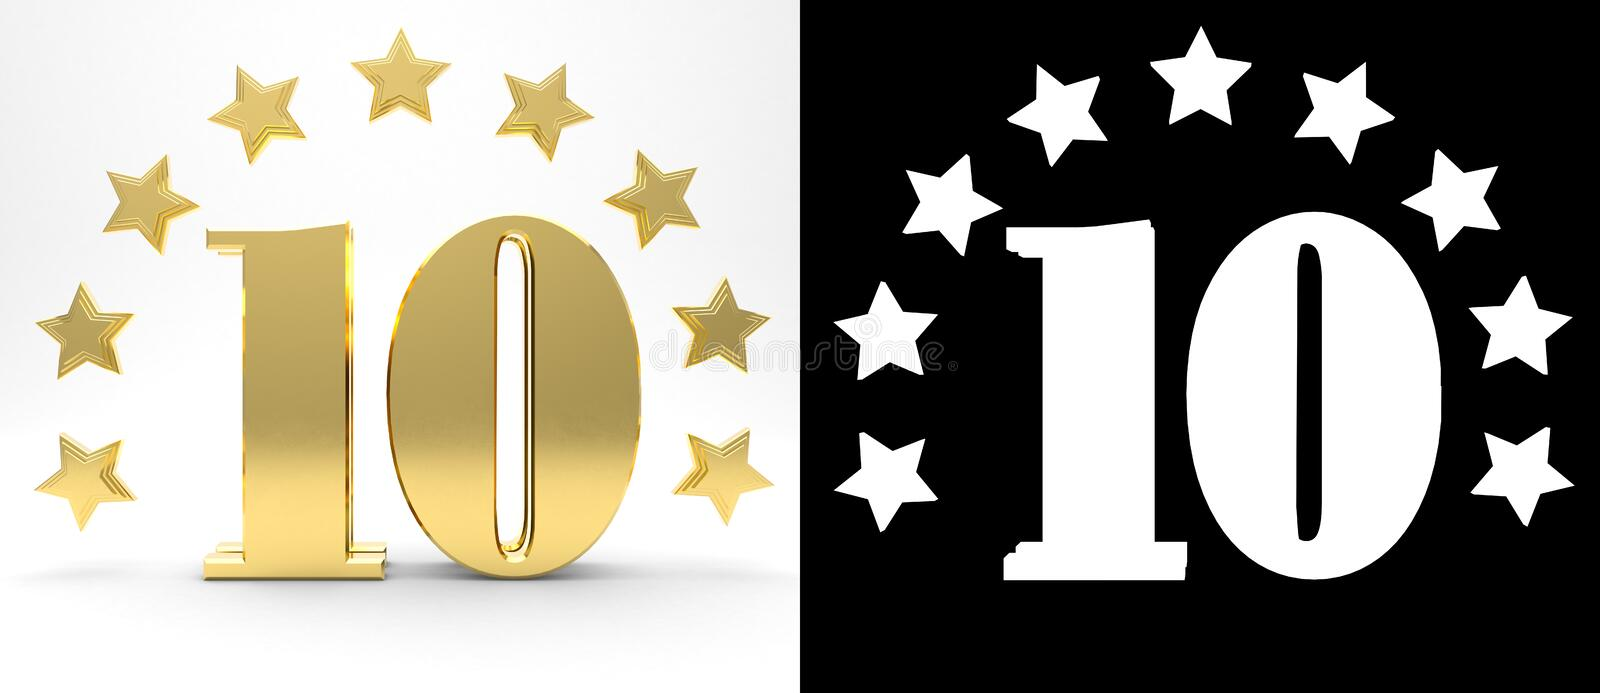 Golden number ten on white background with drop shadow and alpha channel , decorated with a circle of stars. 3D illustration.  royalty free illustration